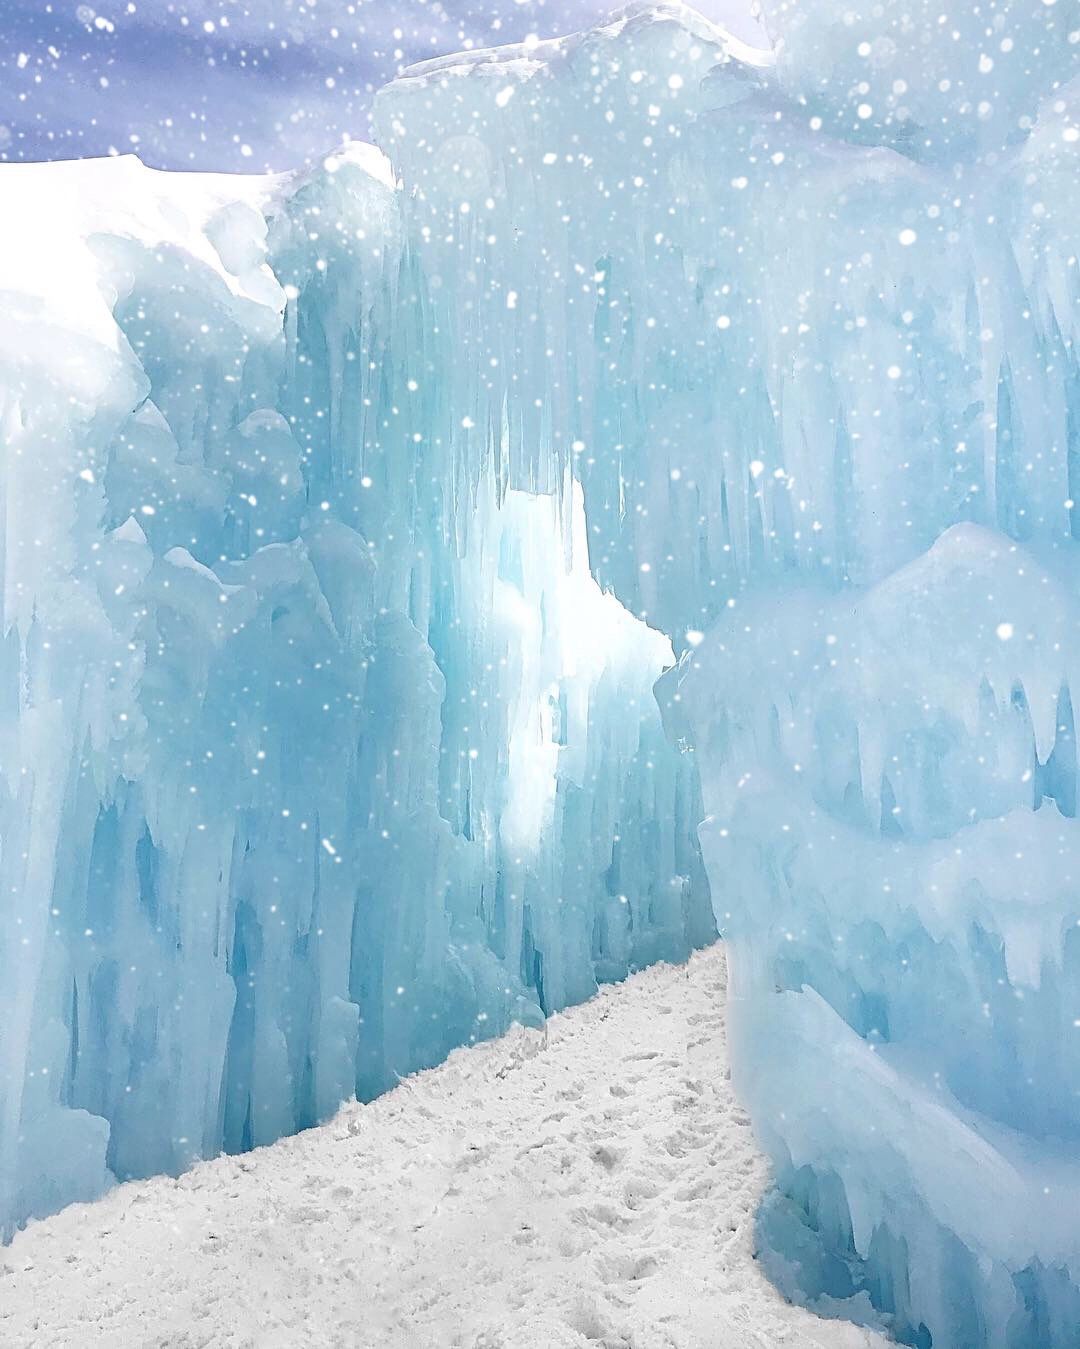 things to do in woodstock nh, things to do in woodstock new hampshire, ice castles near new york real life Arendelle